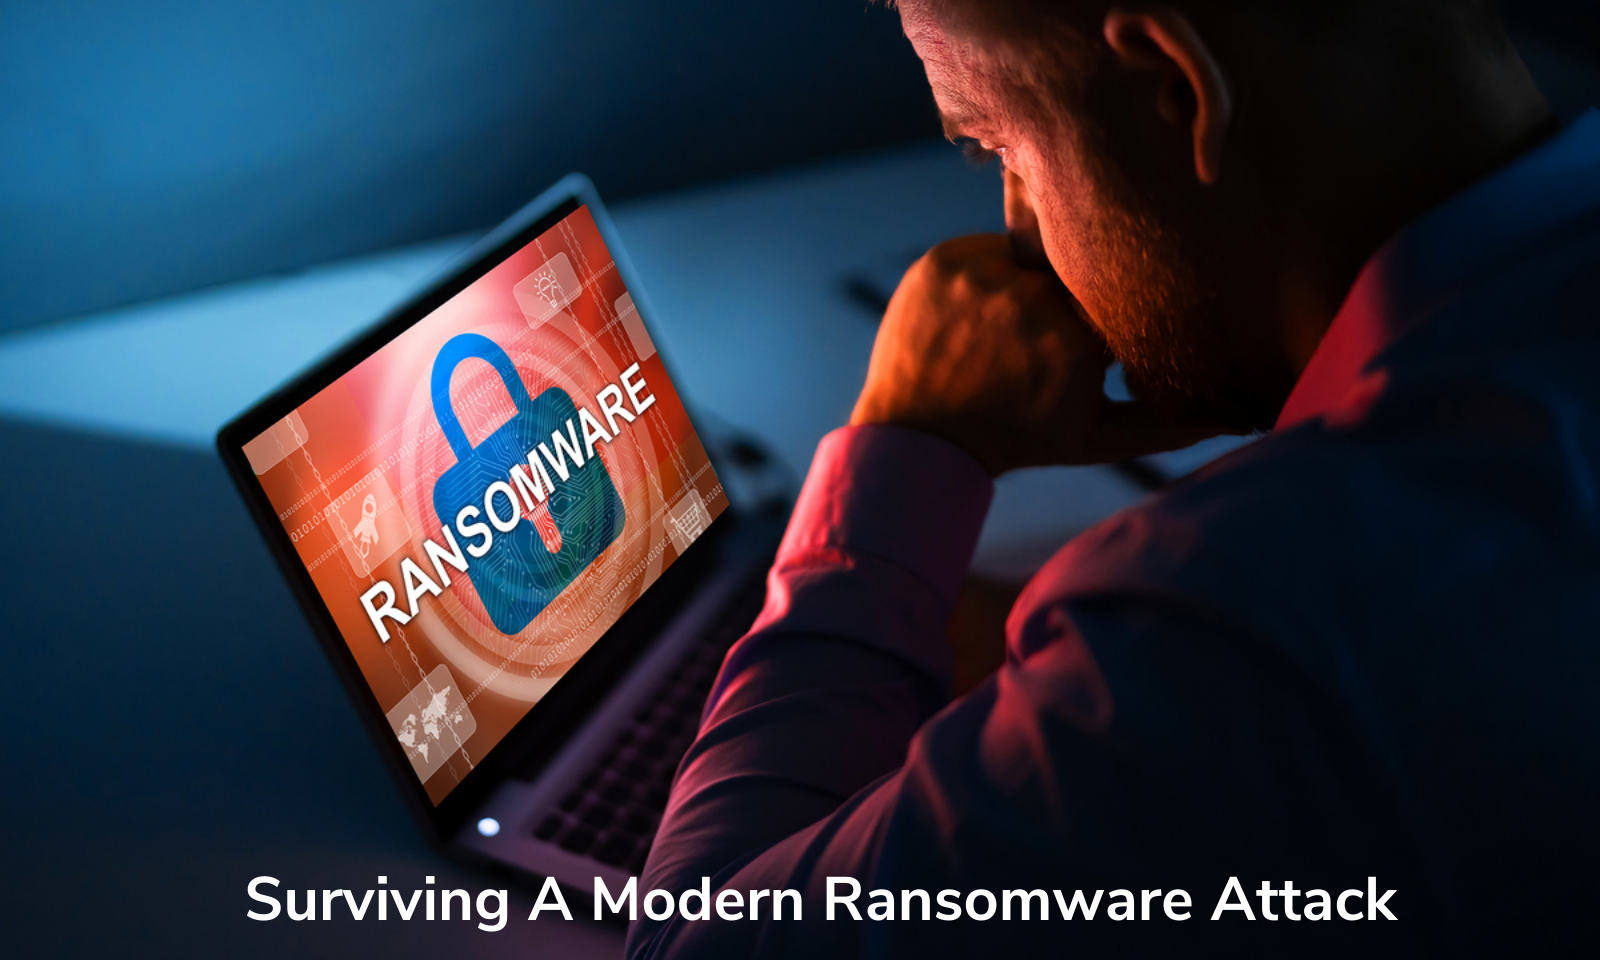 Surviving A Modern Ransomware Attack